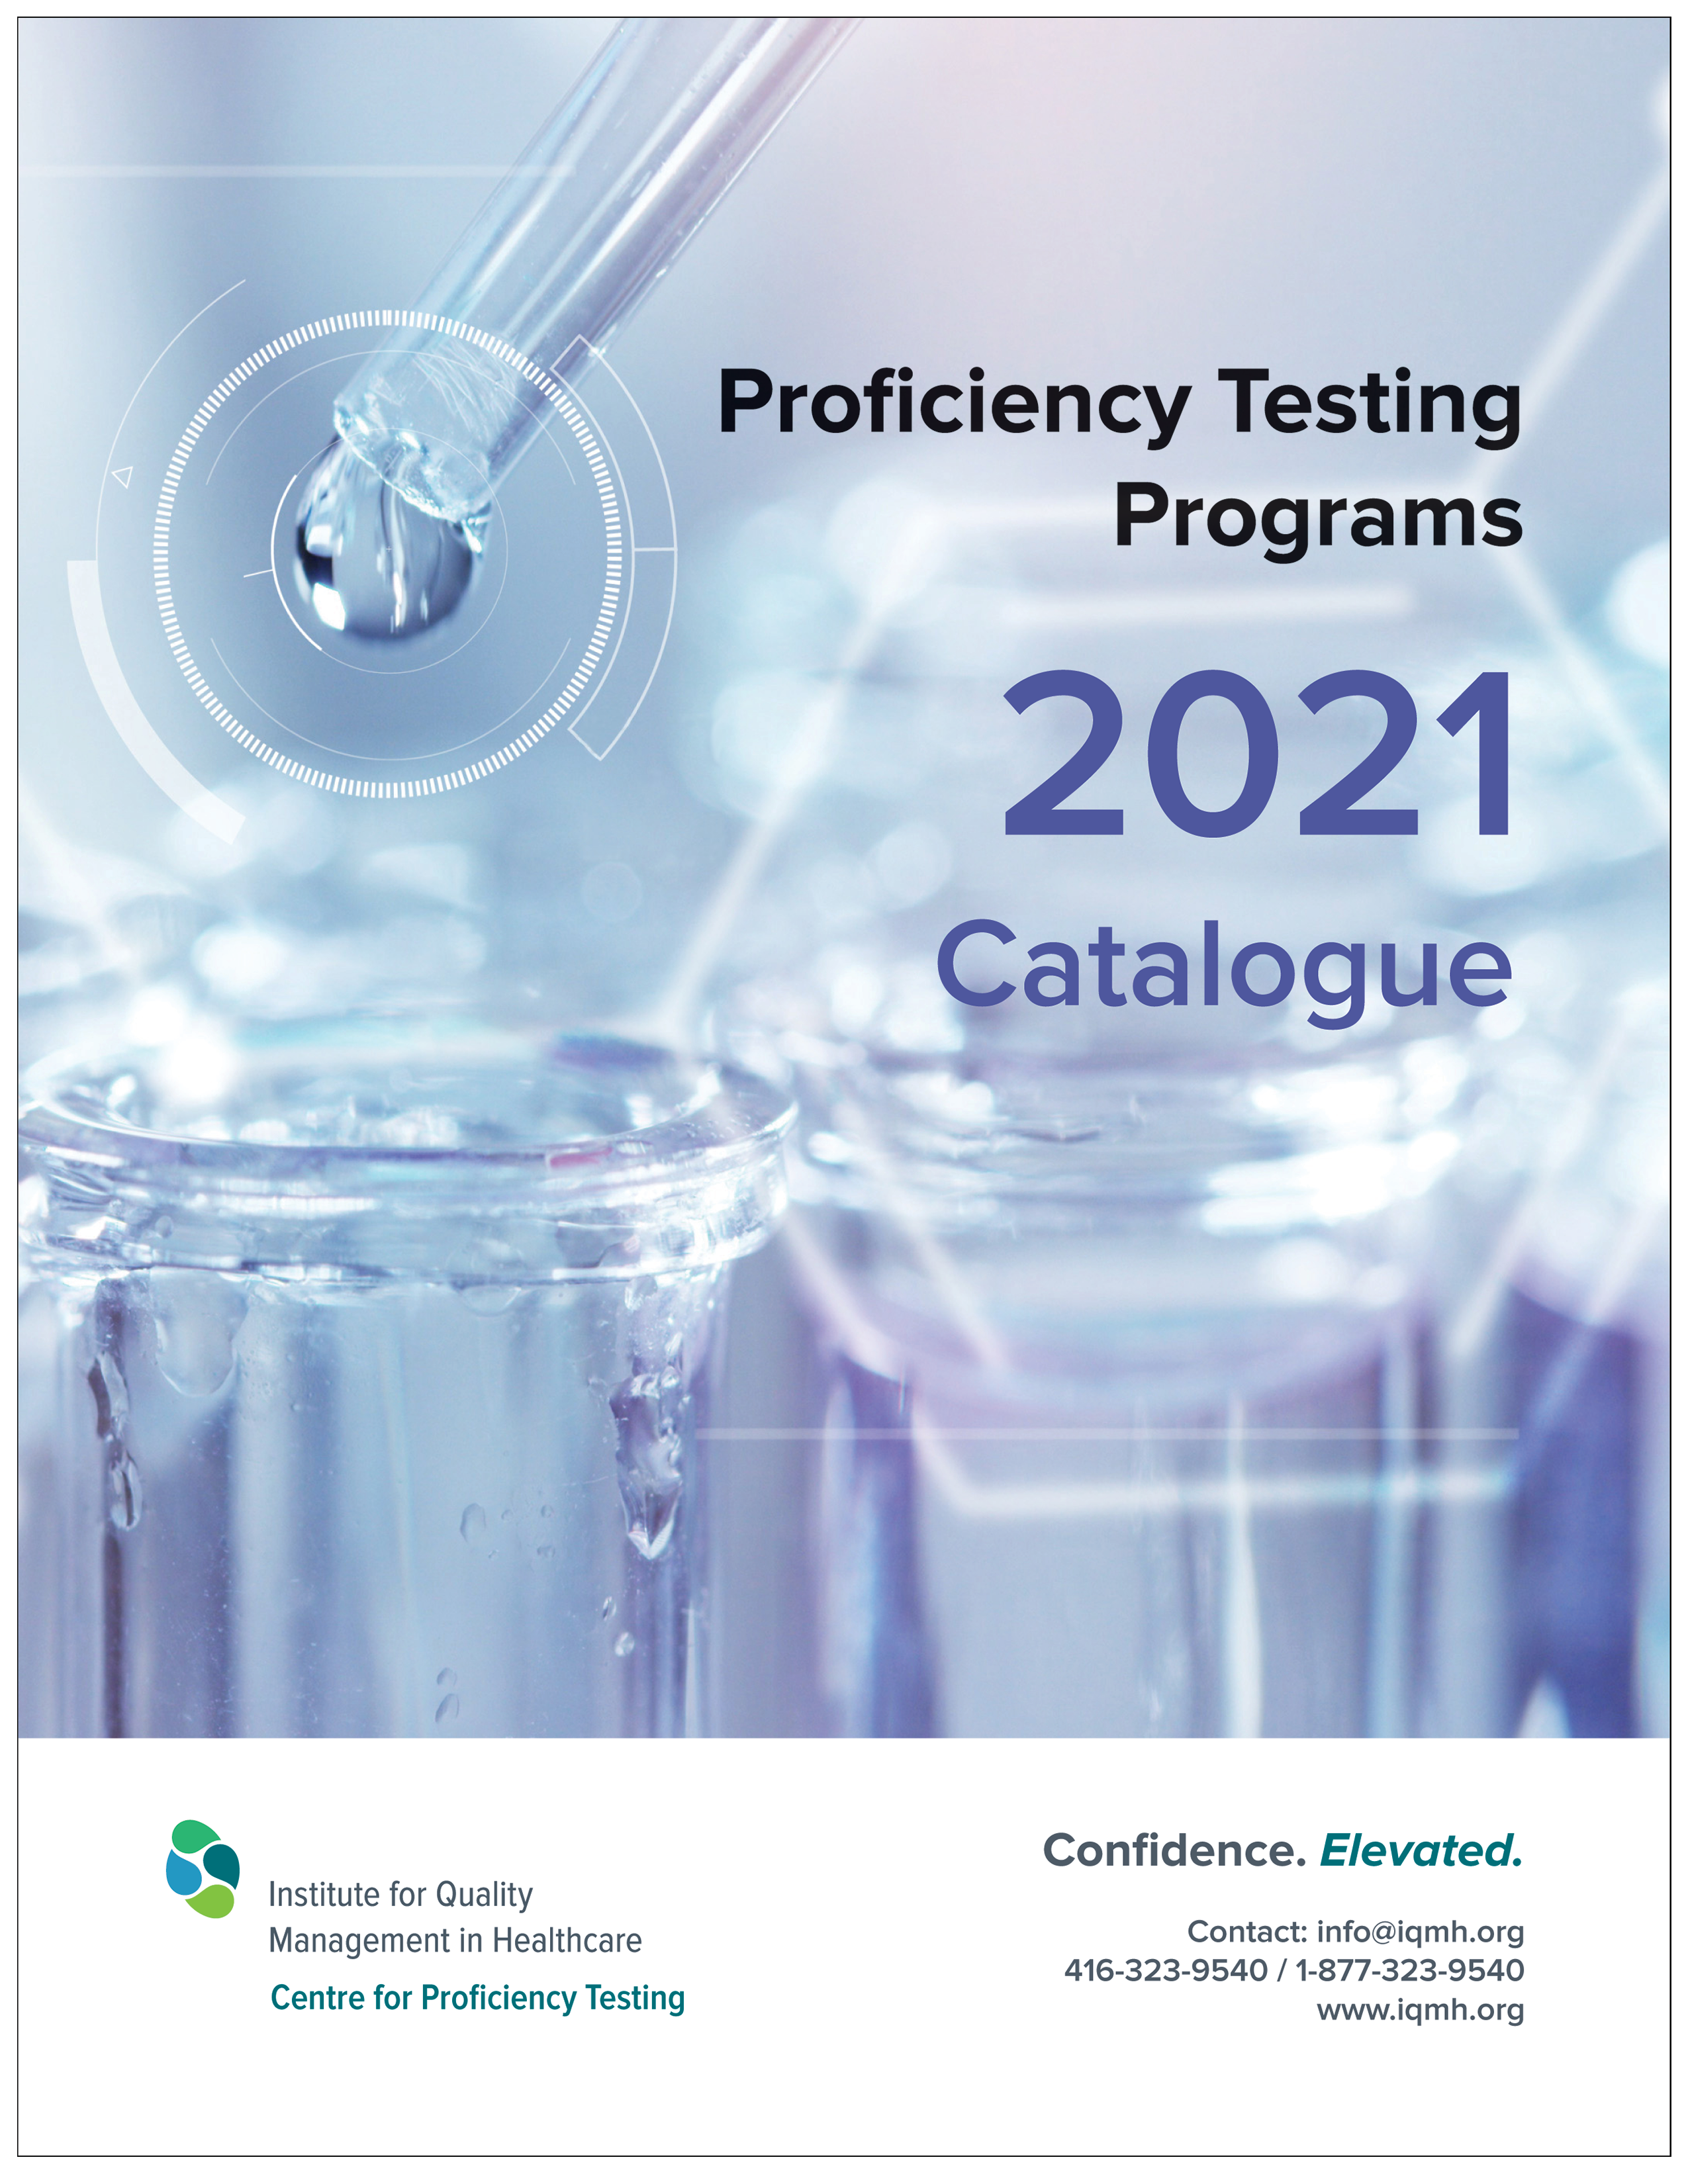 Proficiency Testing Programs 2021